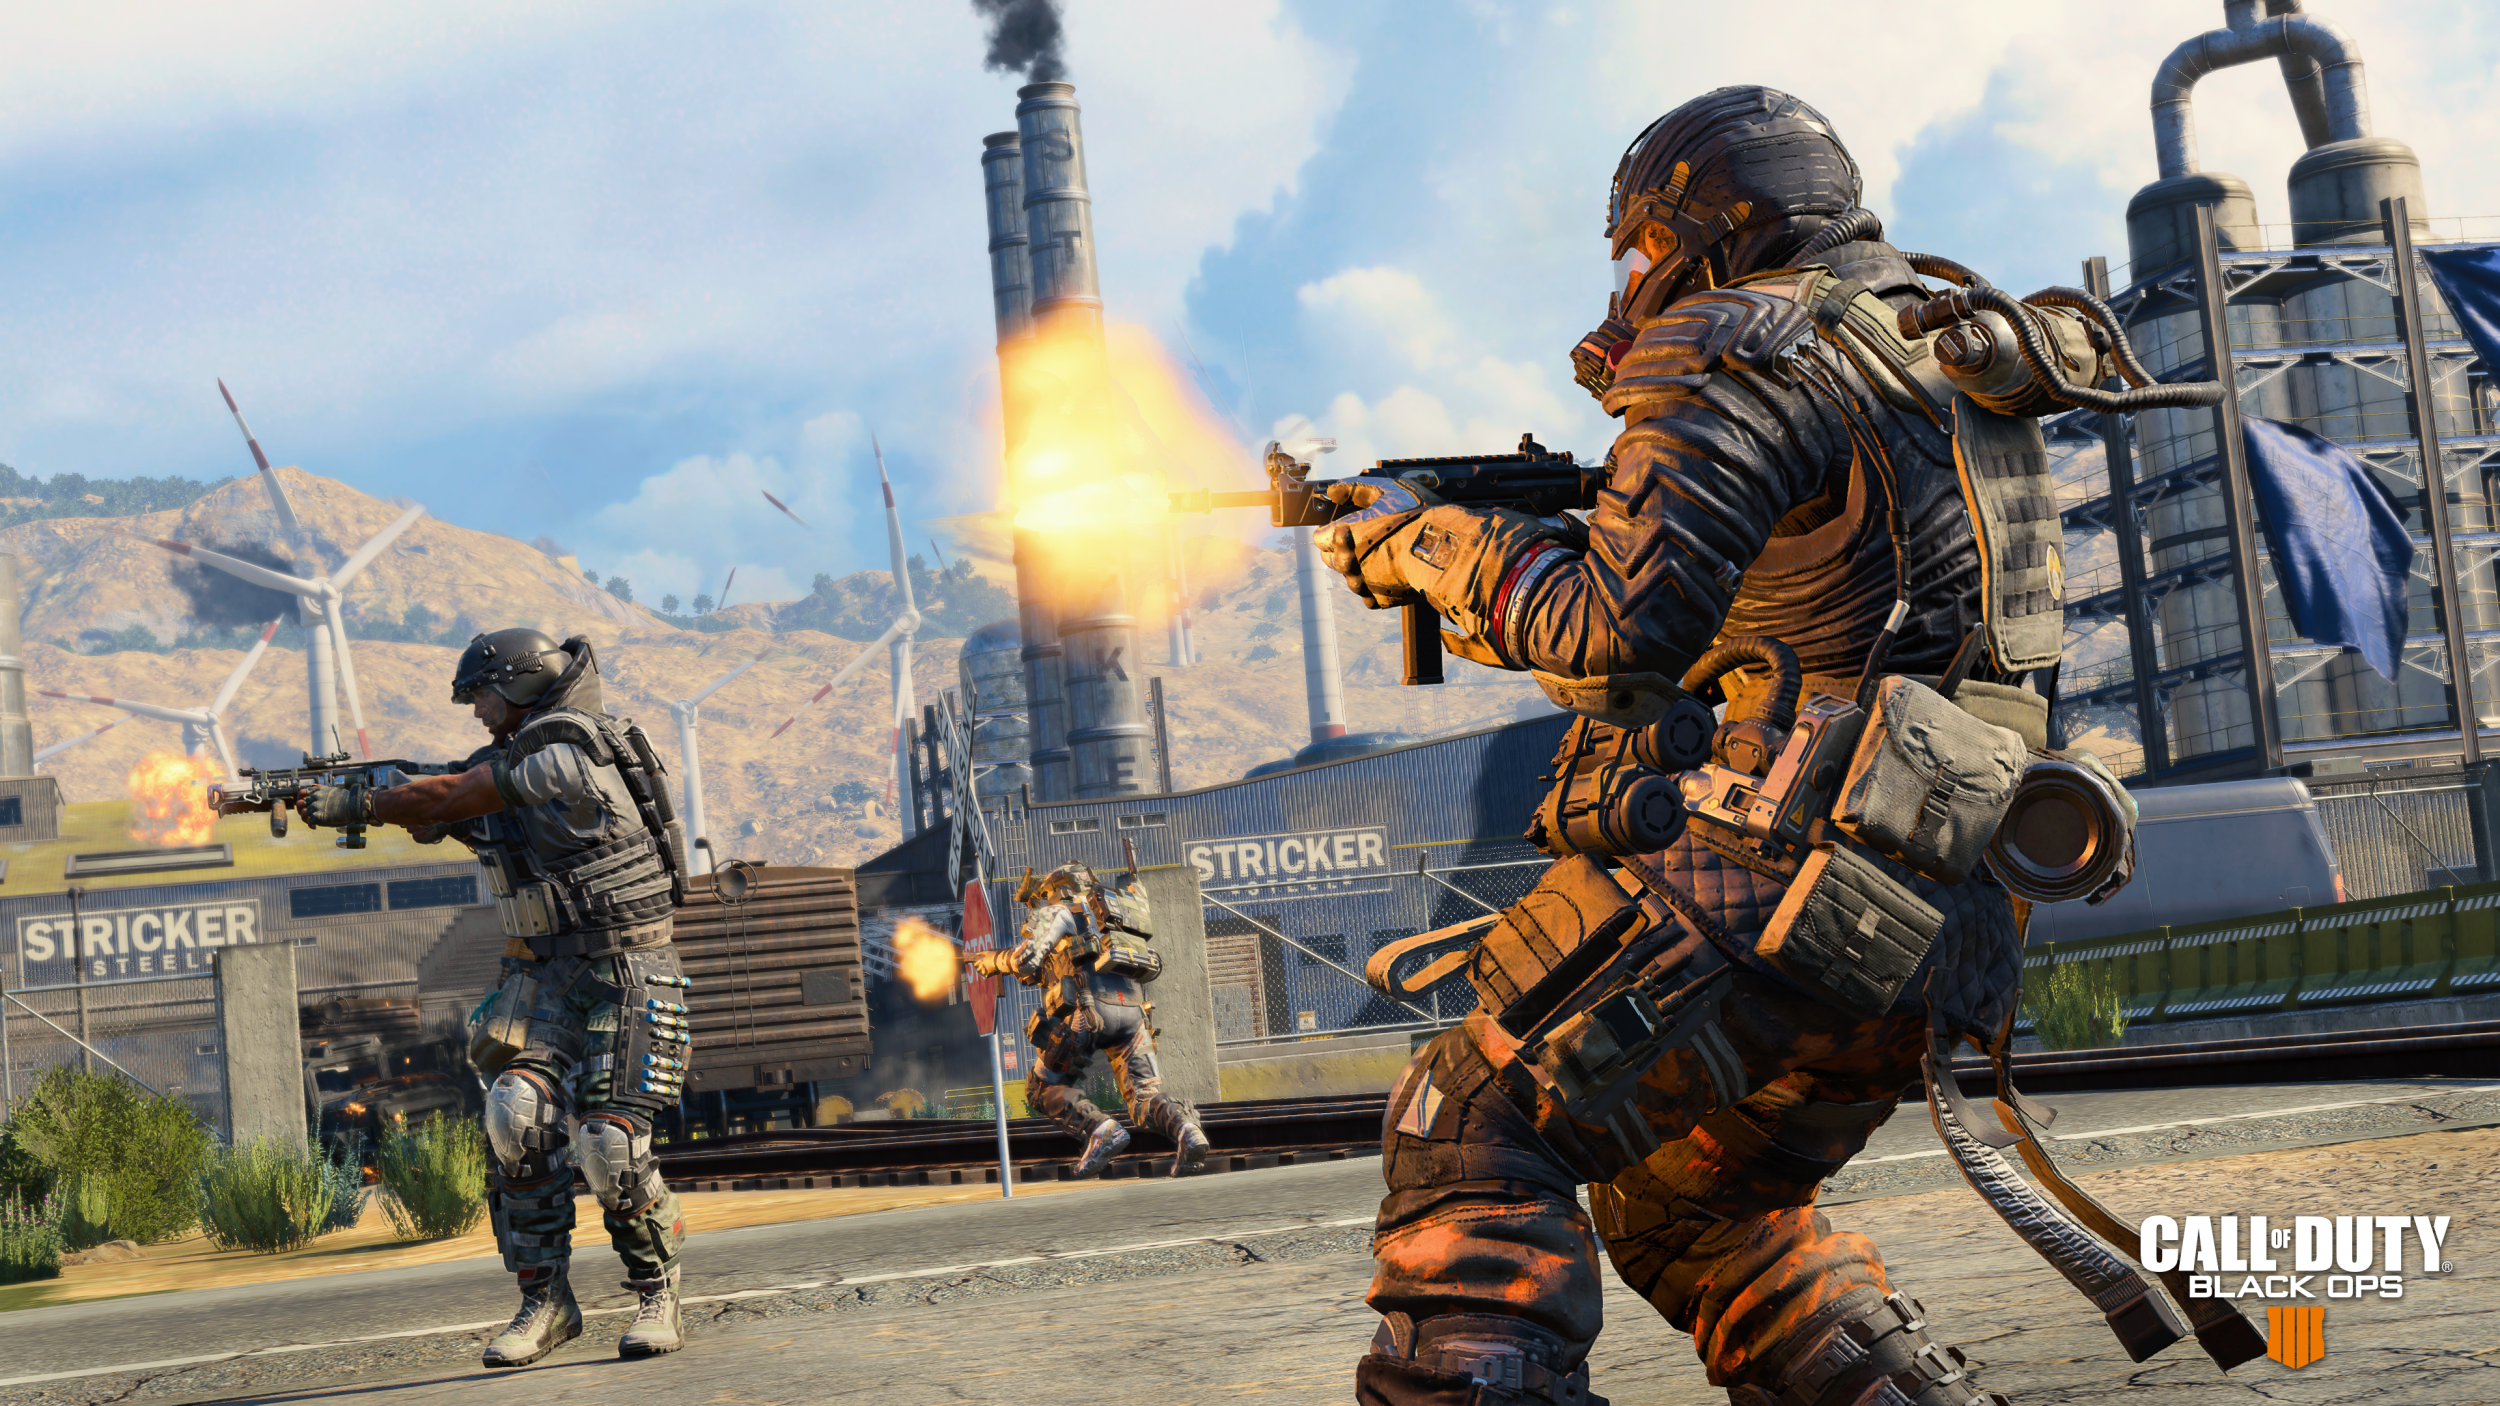 Black Ops 4 Blackout trial dates